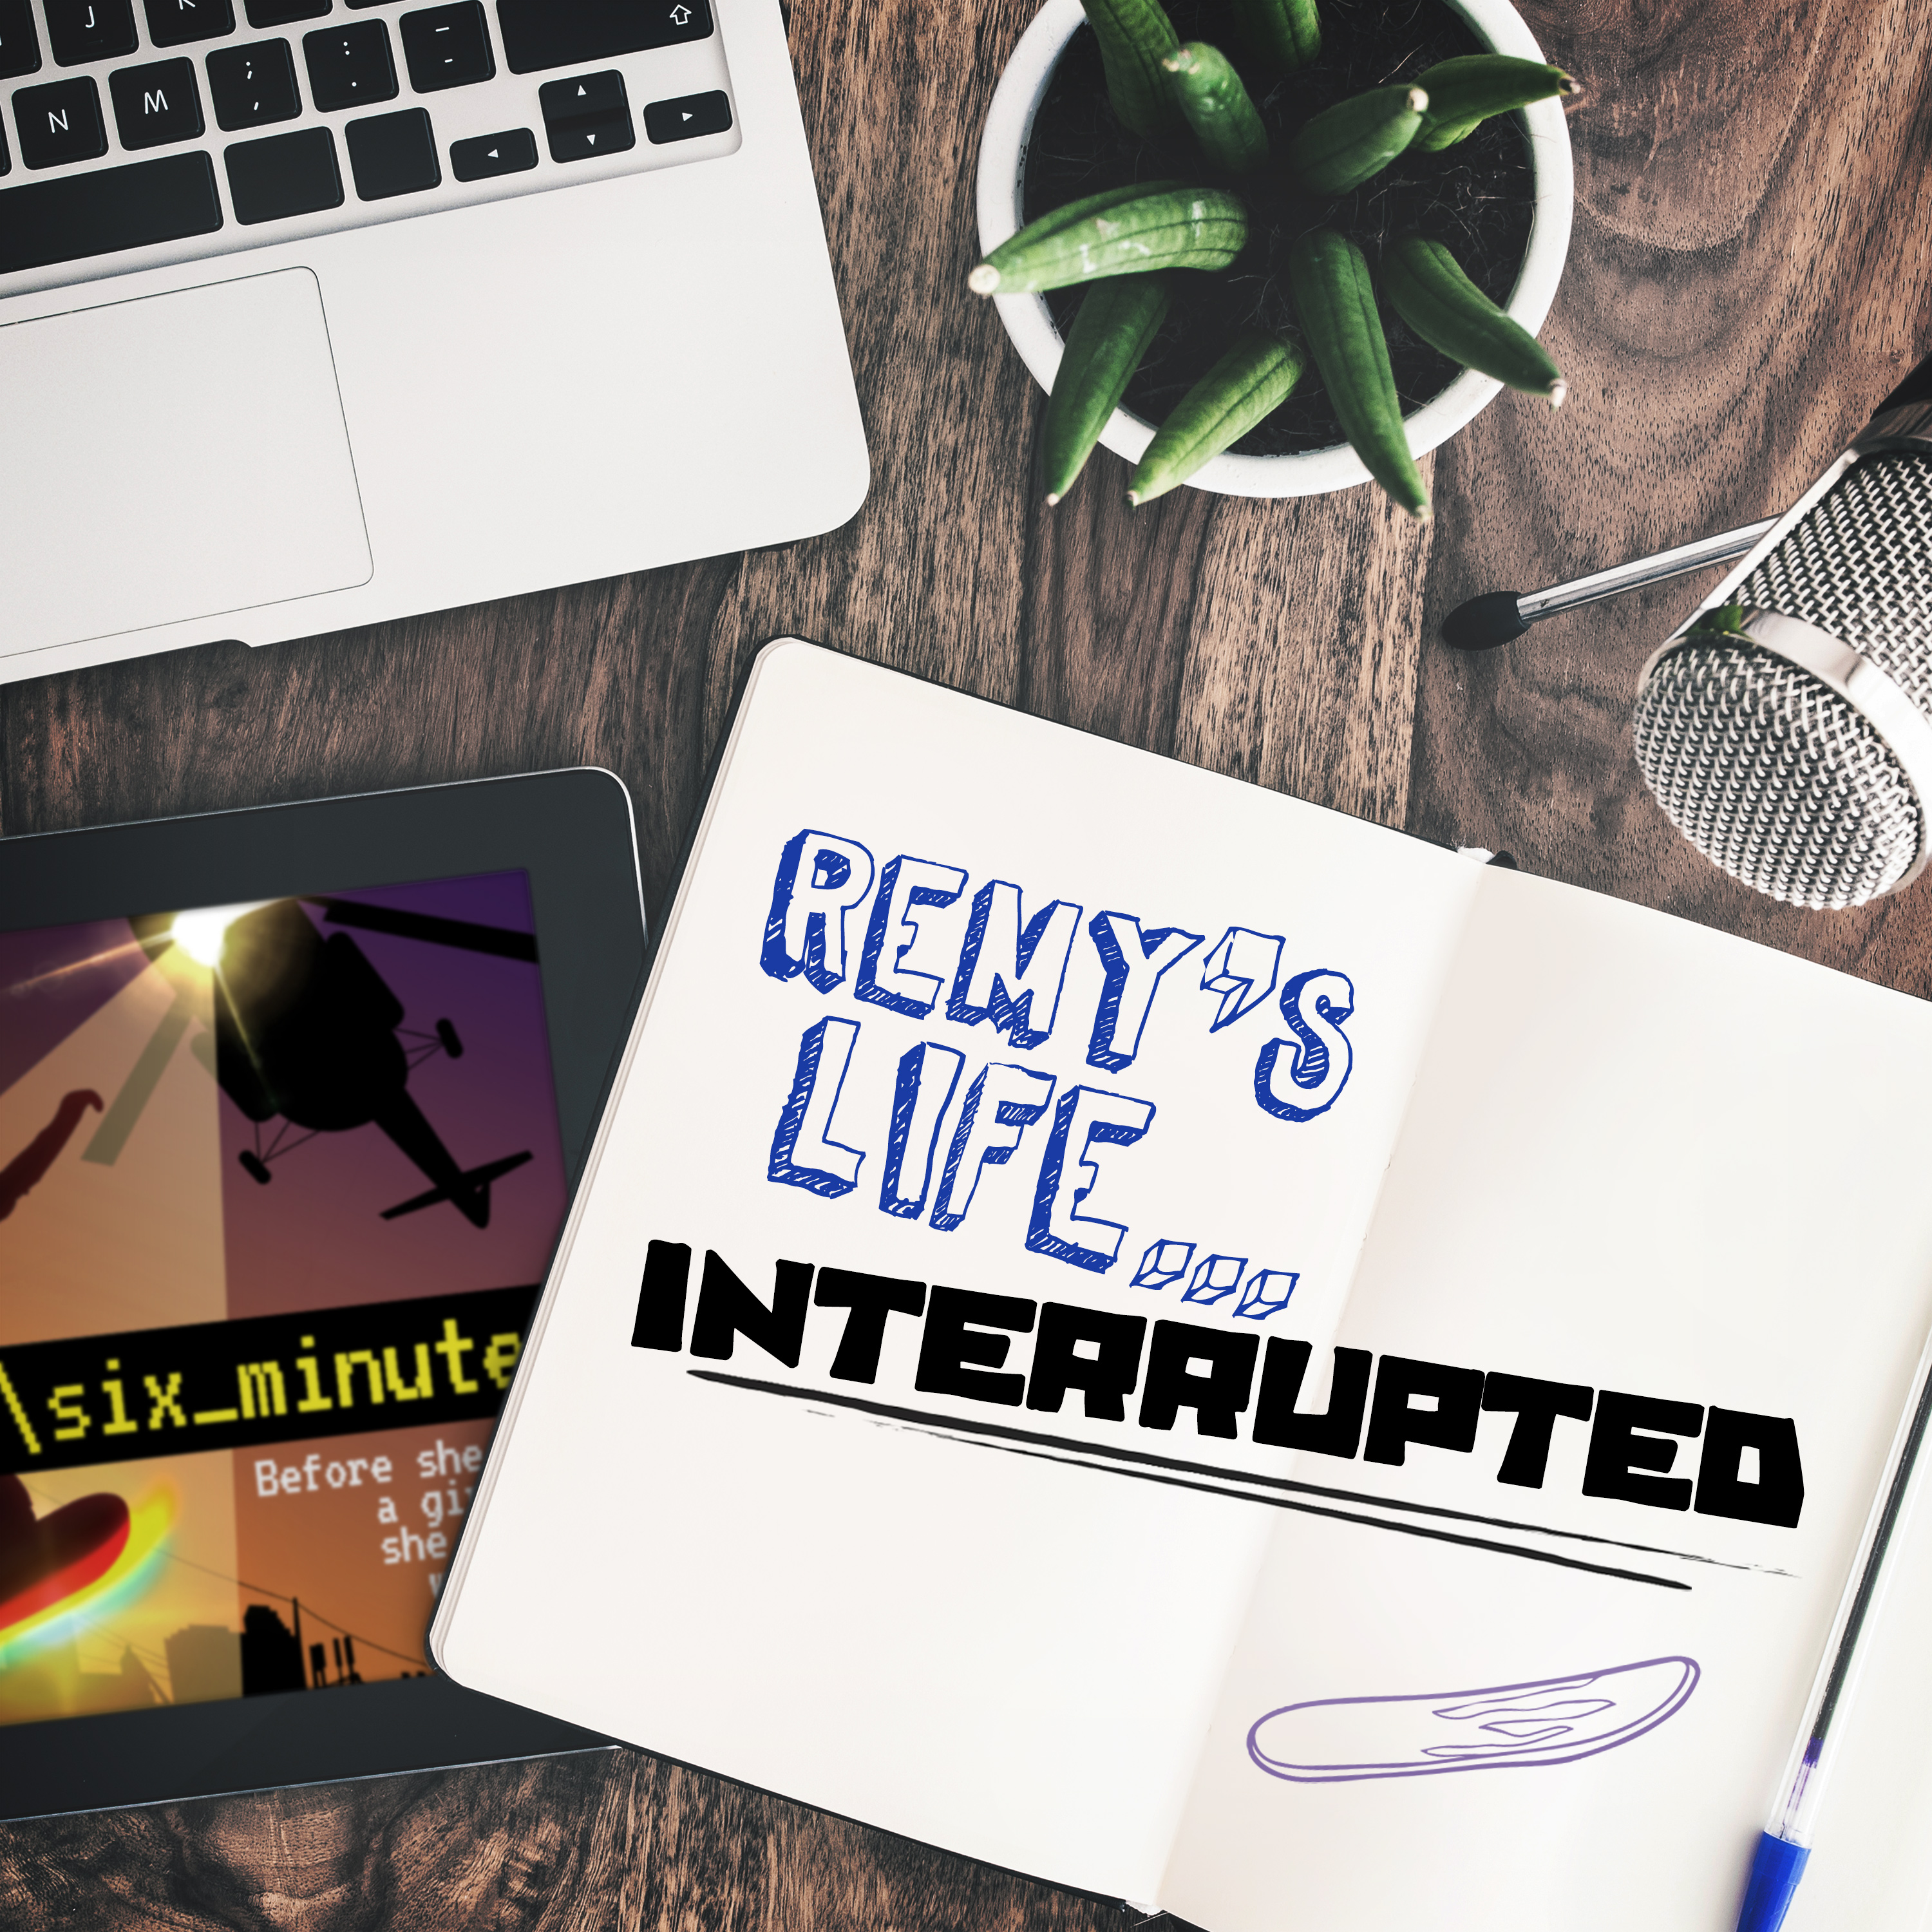 Remy's Life Interrupted: EP87